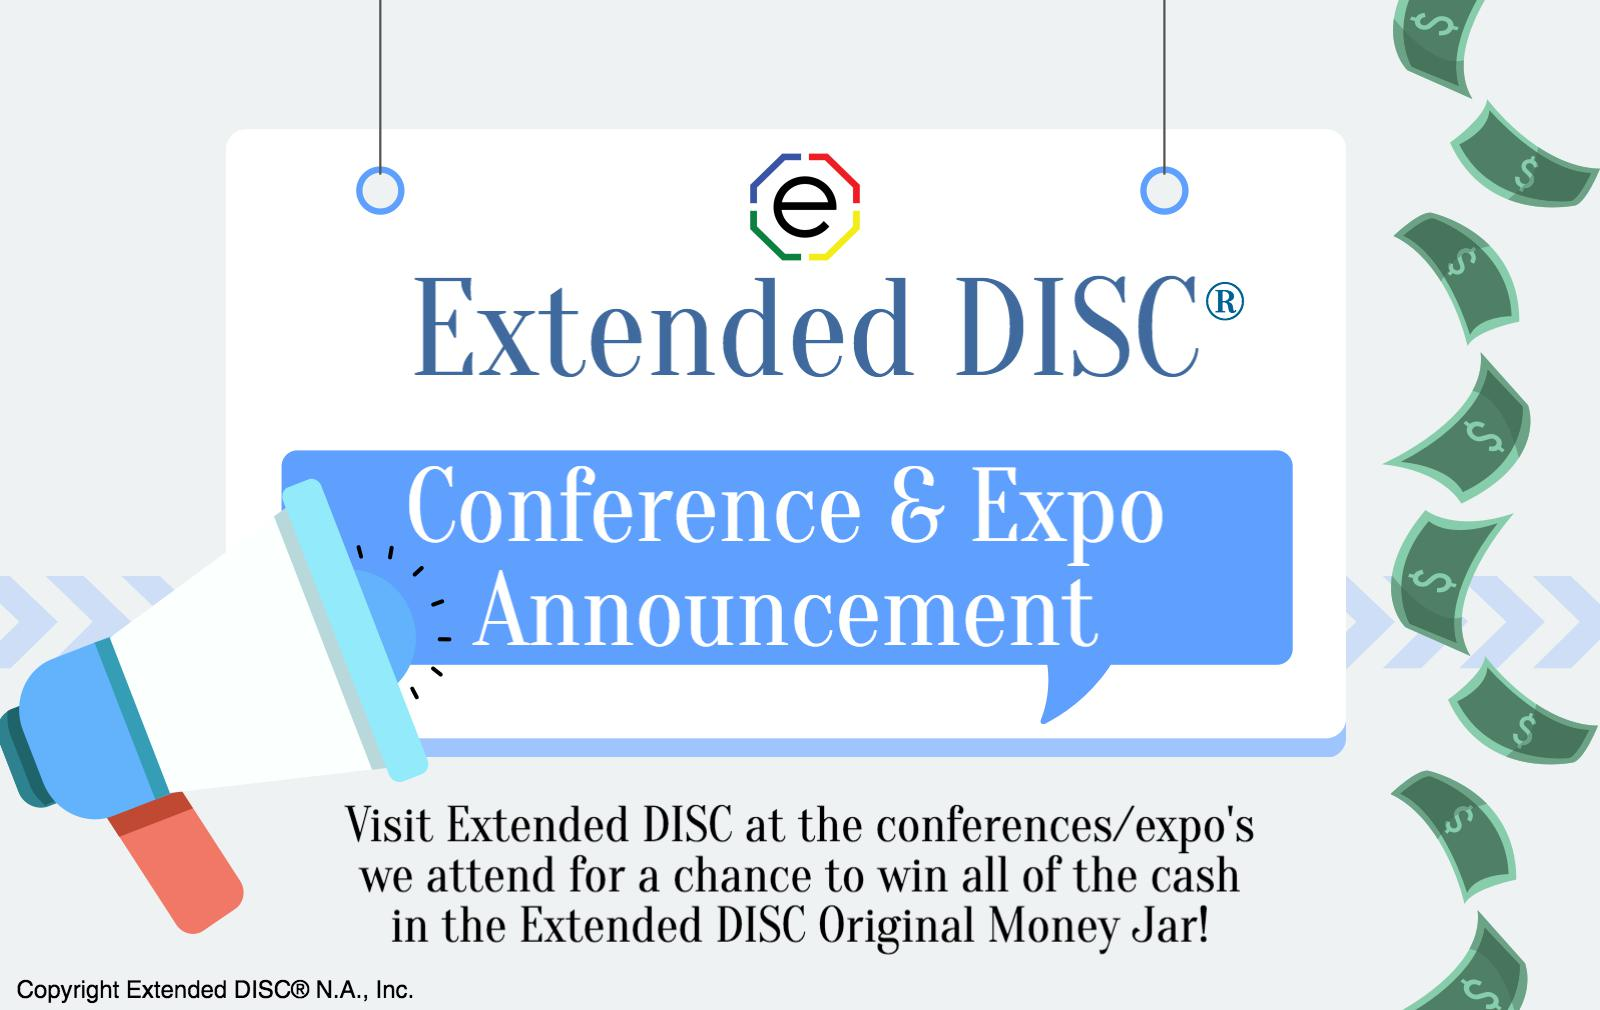 Join Extended DISC at the ATD Internation Conference & Expo!